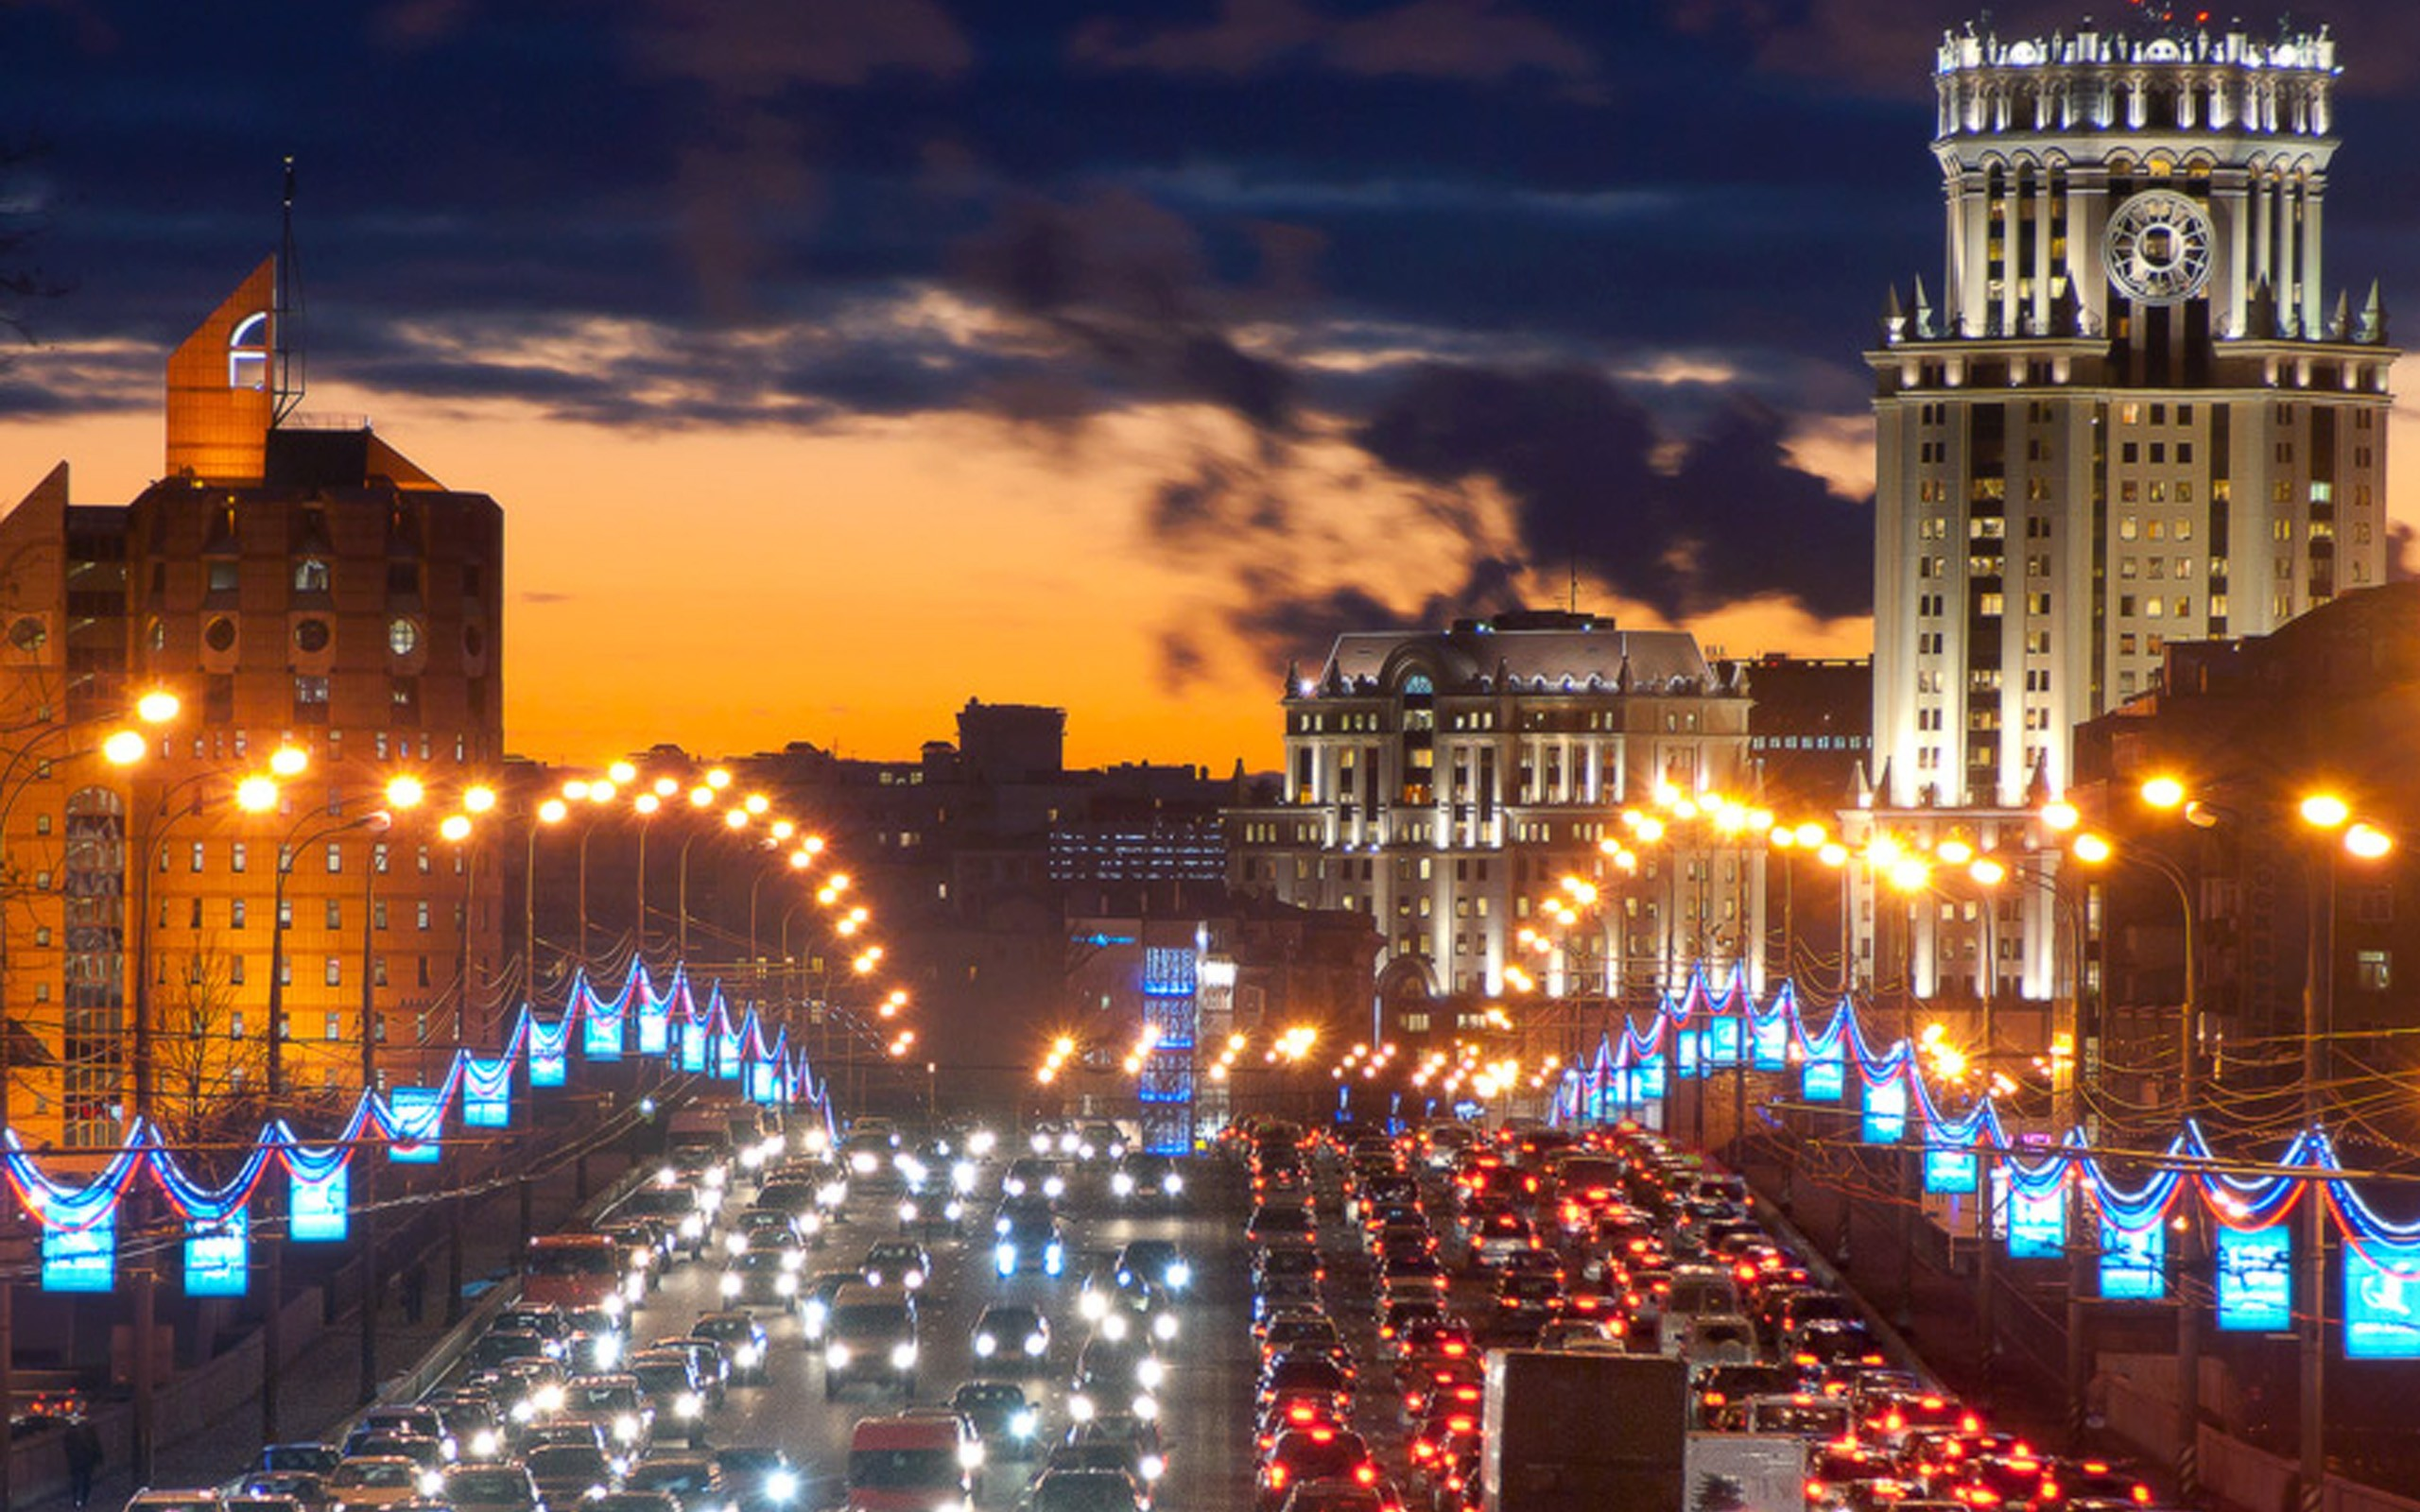 Night Life of Moscow Russia   Wallpaper 32395 2560x1600